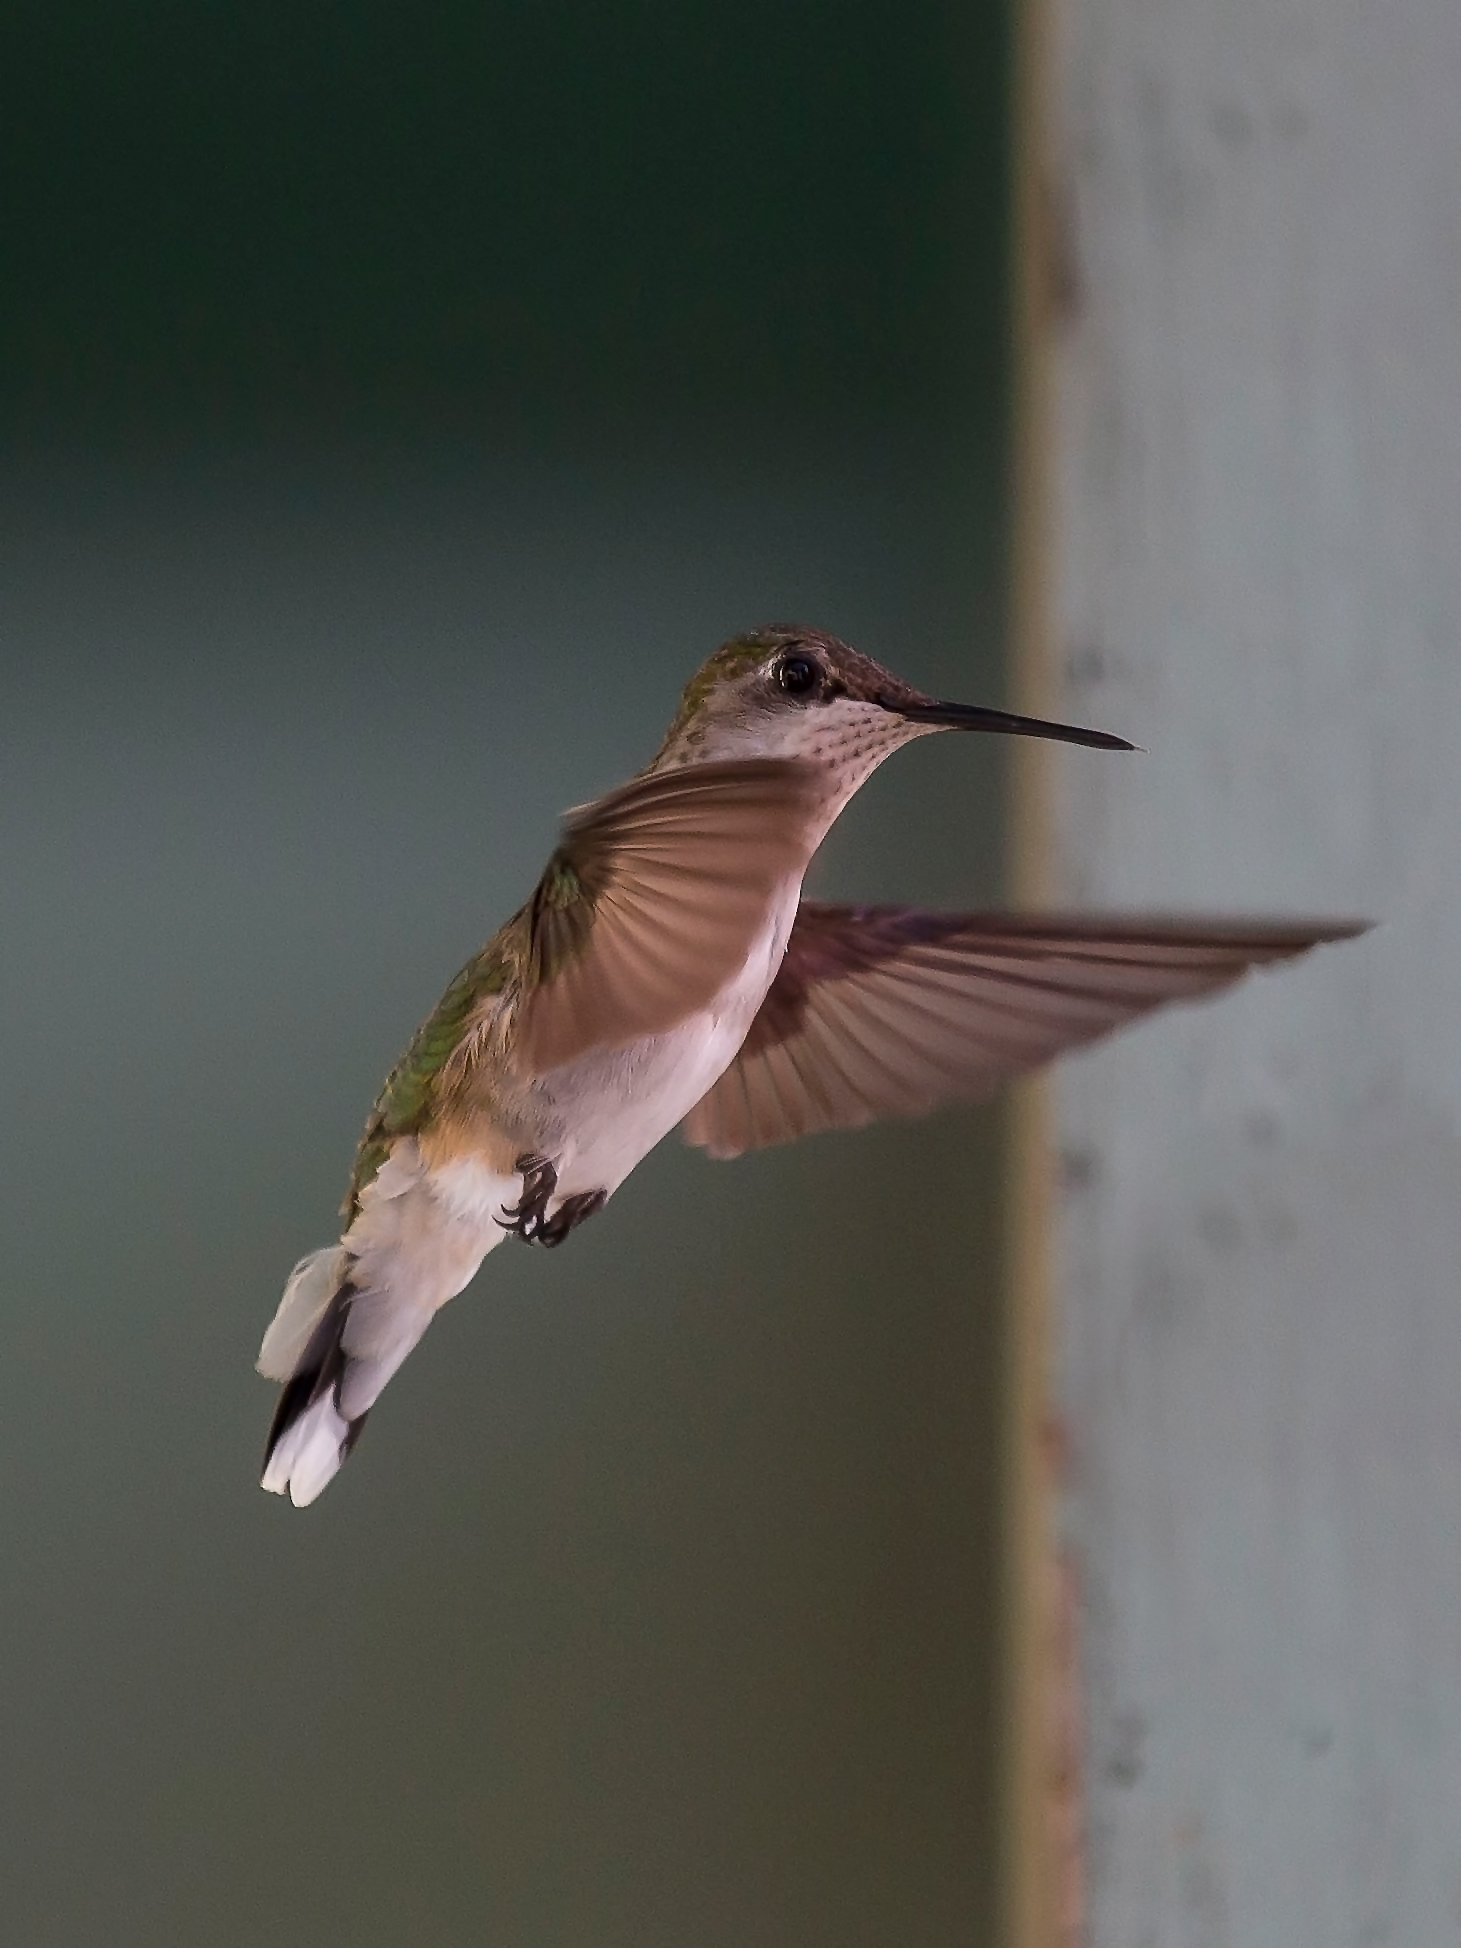 Our local hummingbird